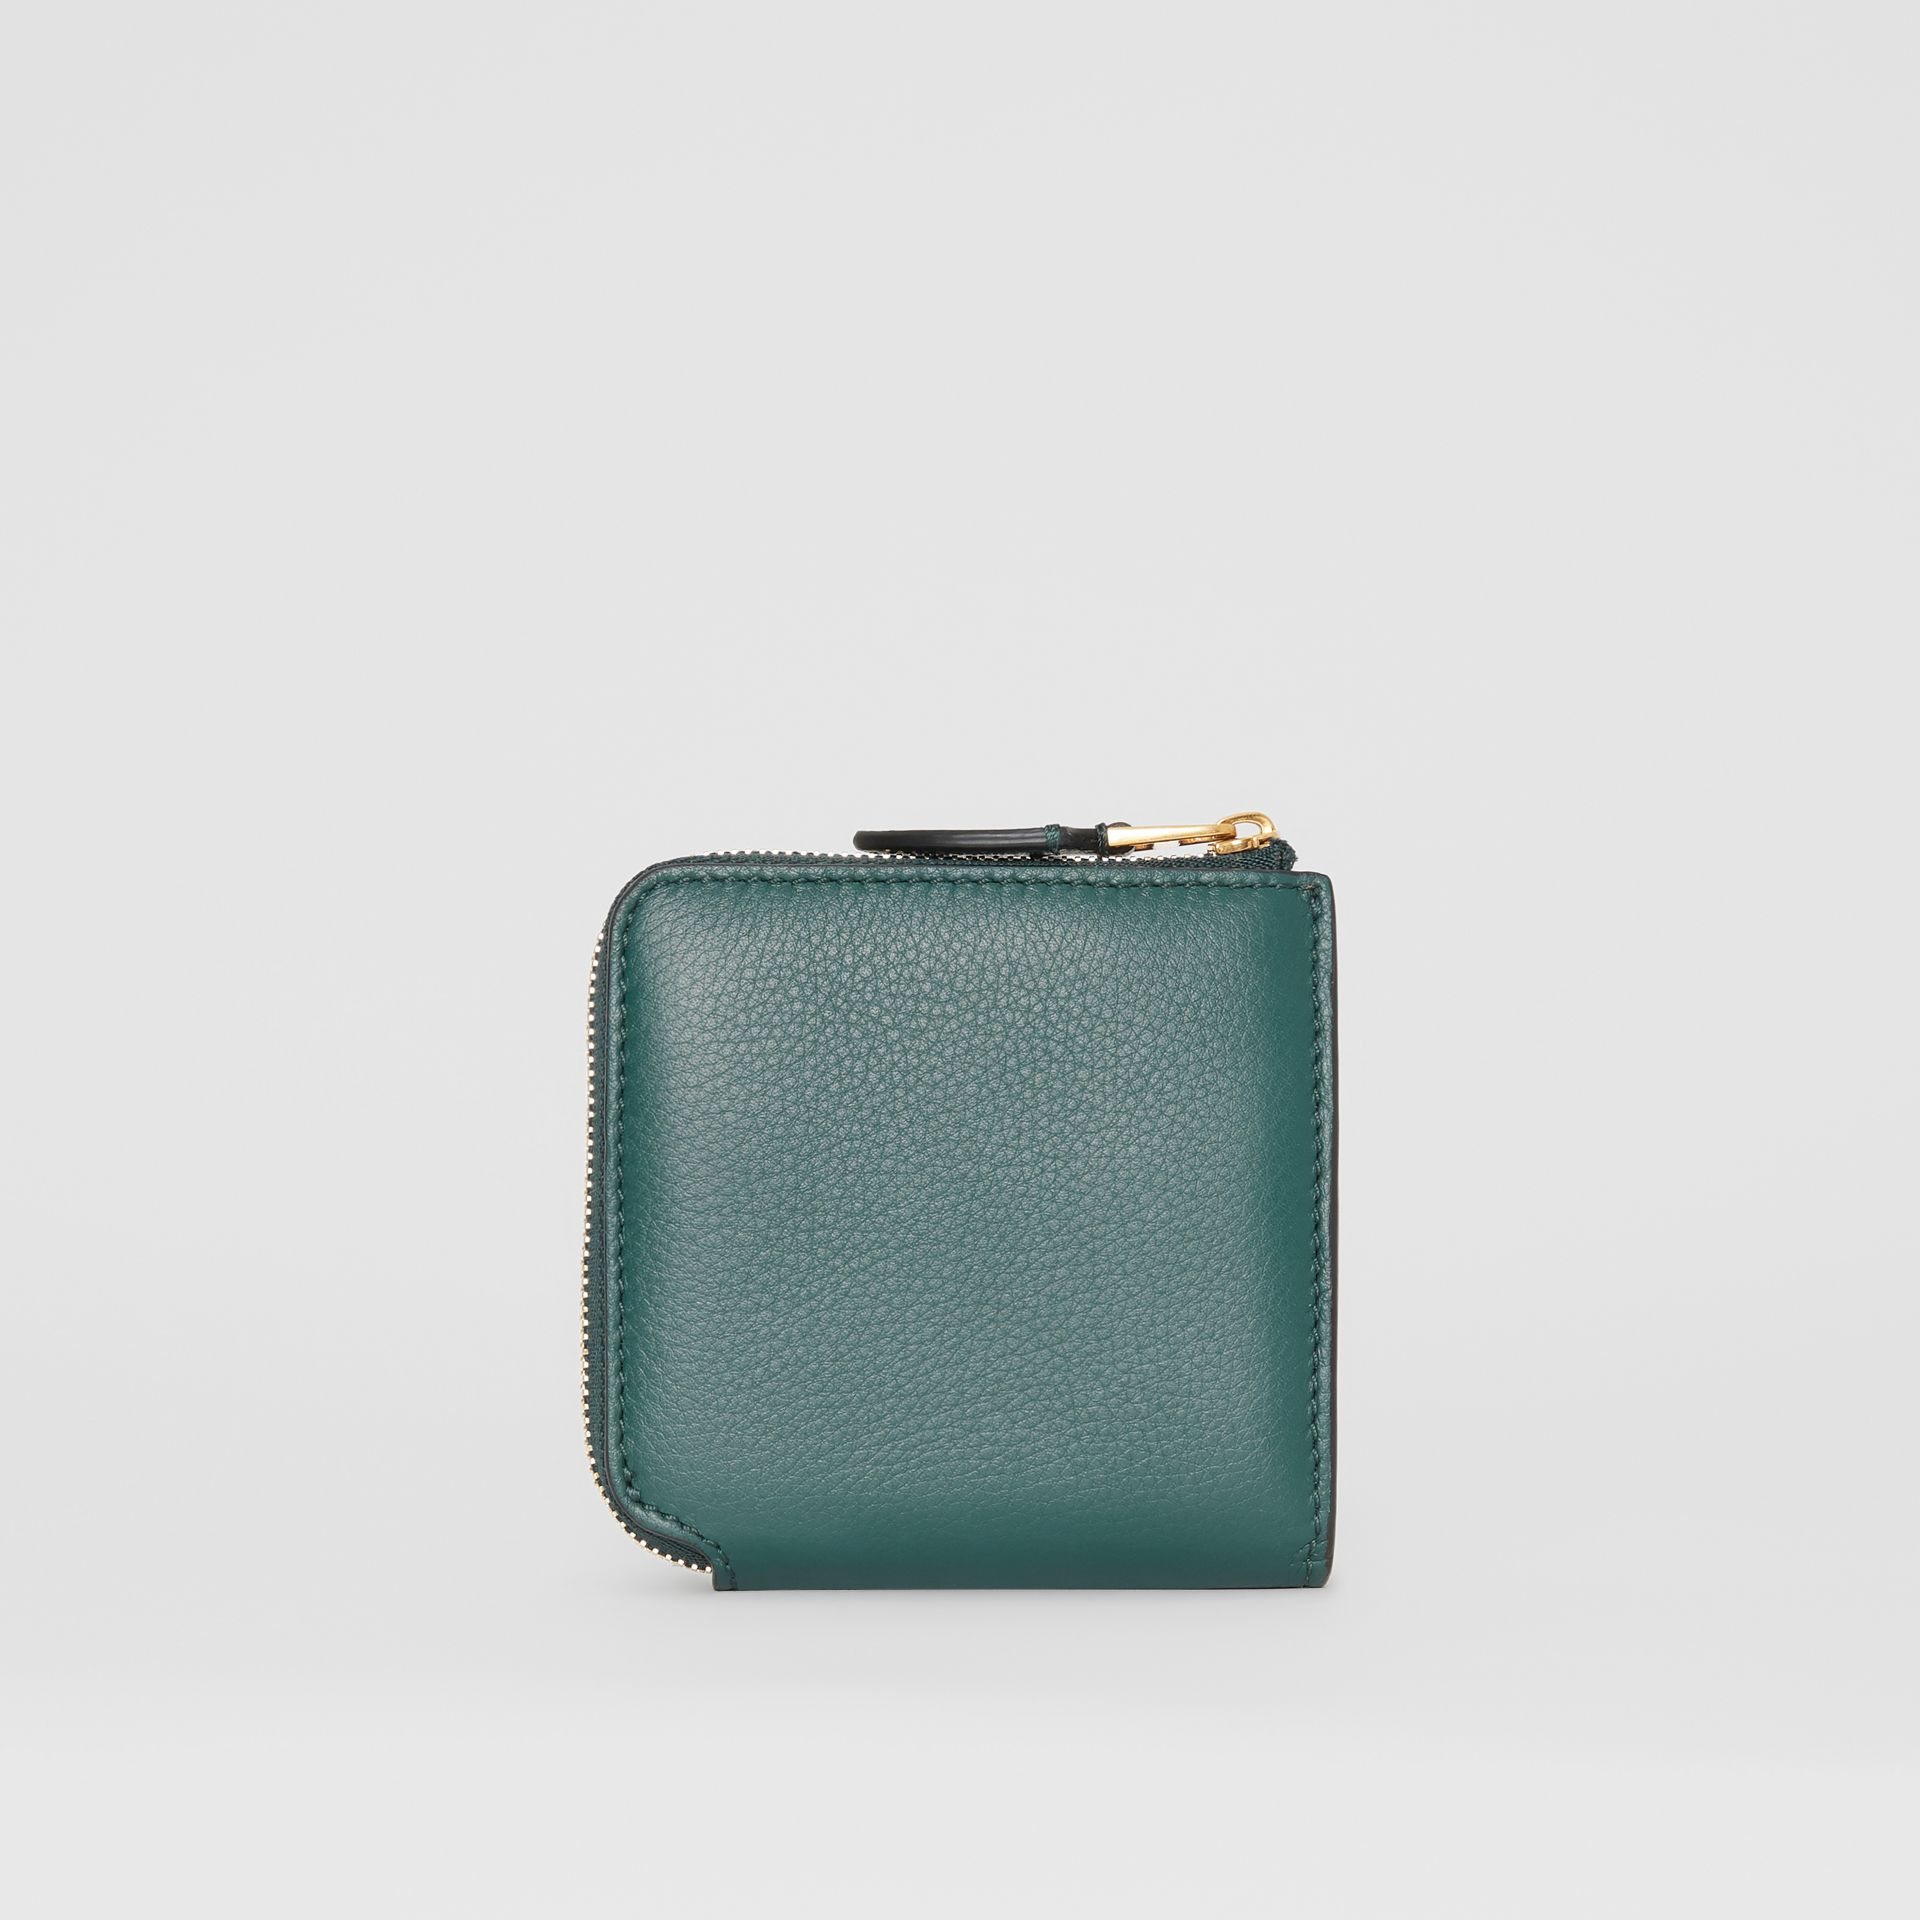 Grainy Leather Square Ziparound Wallet in Dark Cyan - Women | Burberry - gallery image 5